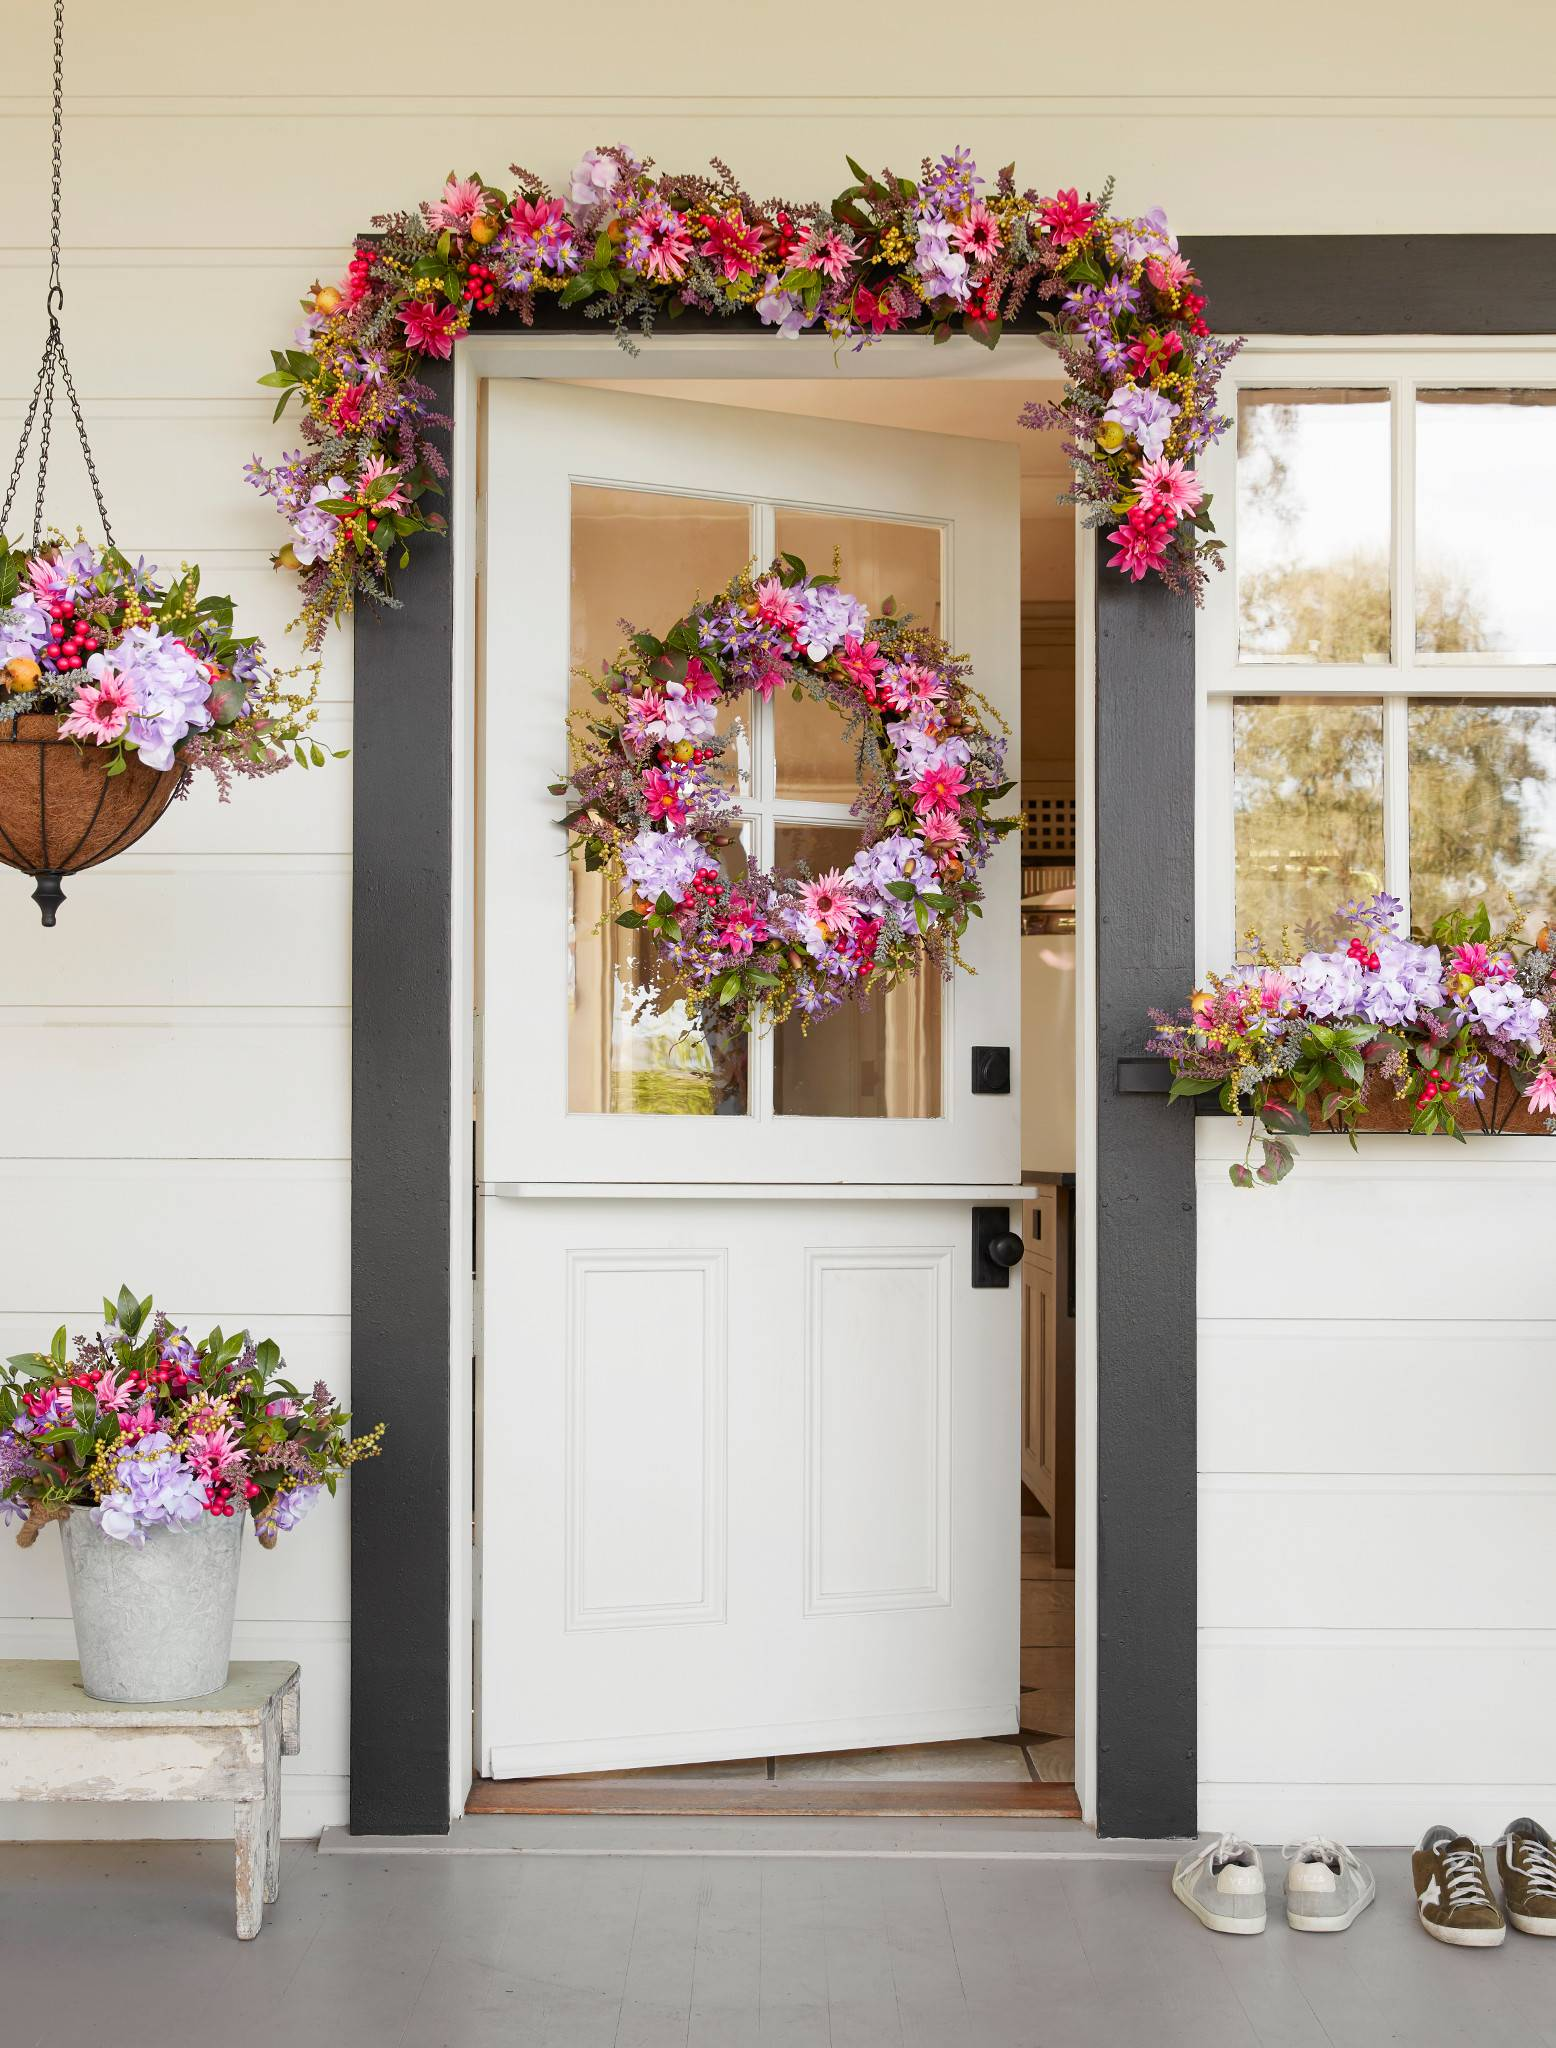 Balsam Hill Vibrant Summer Bloom Florals on doorway and porch